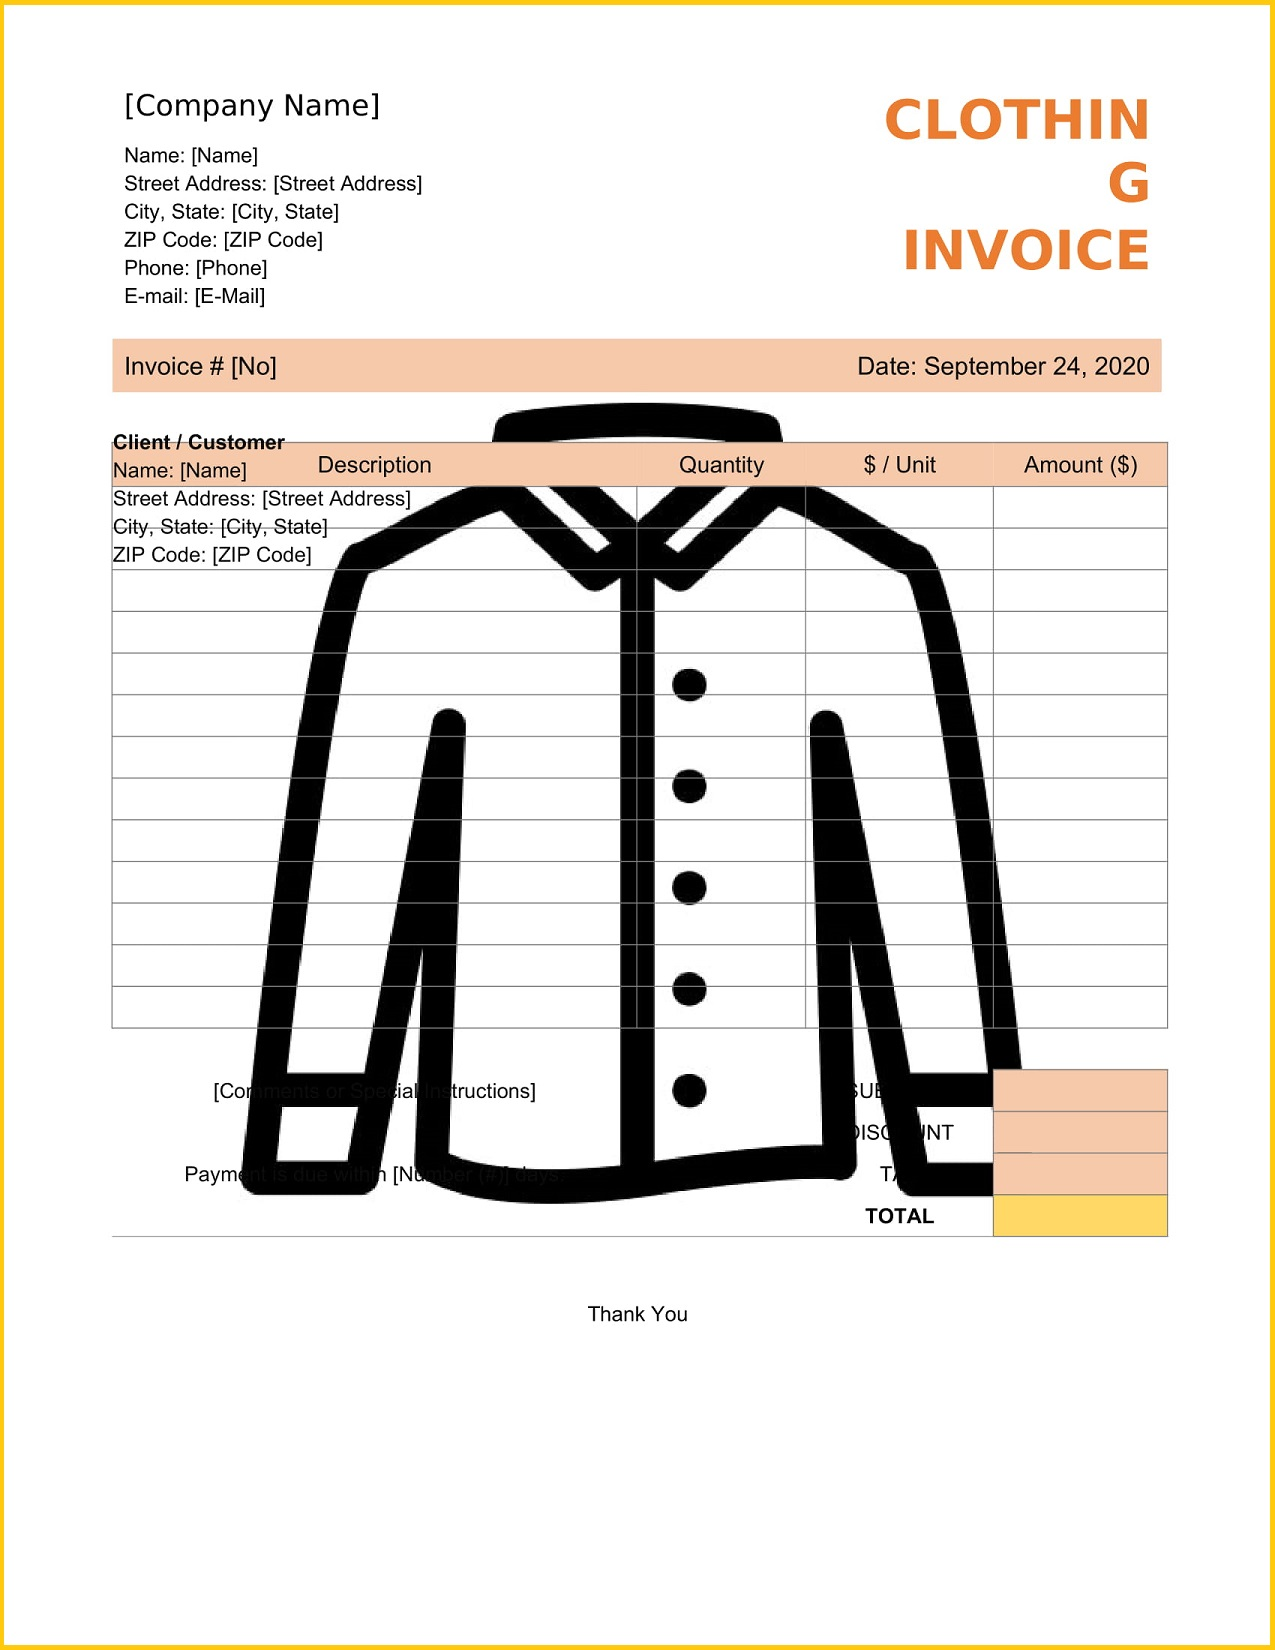 Clothing Invoice Word Template Tax Sample Cloth Shop Bill Format In Invoicemaker  (Garments) Full